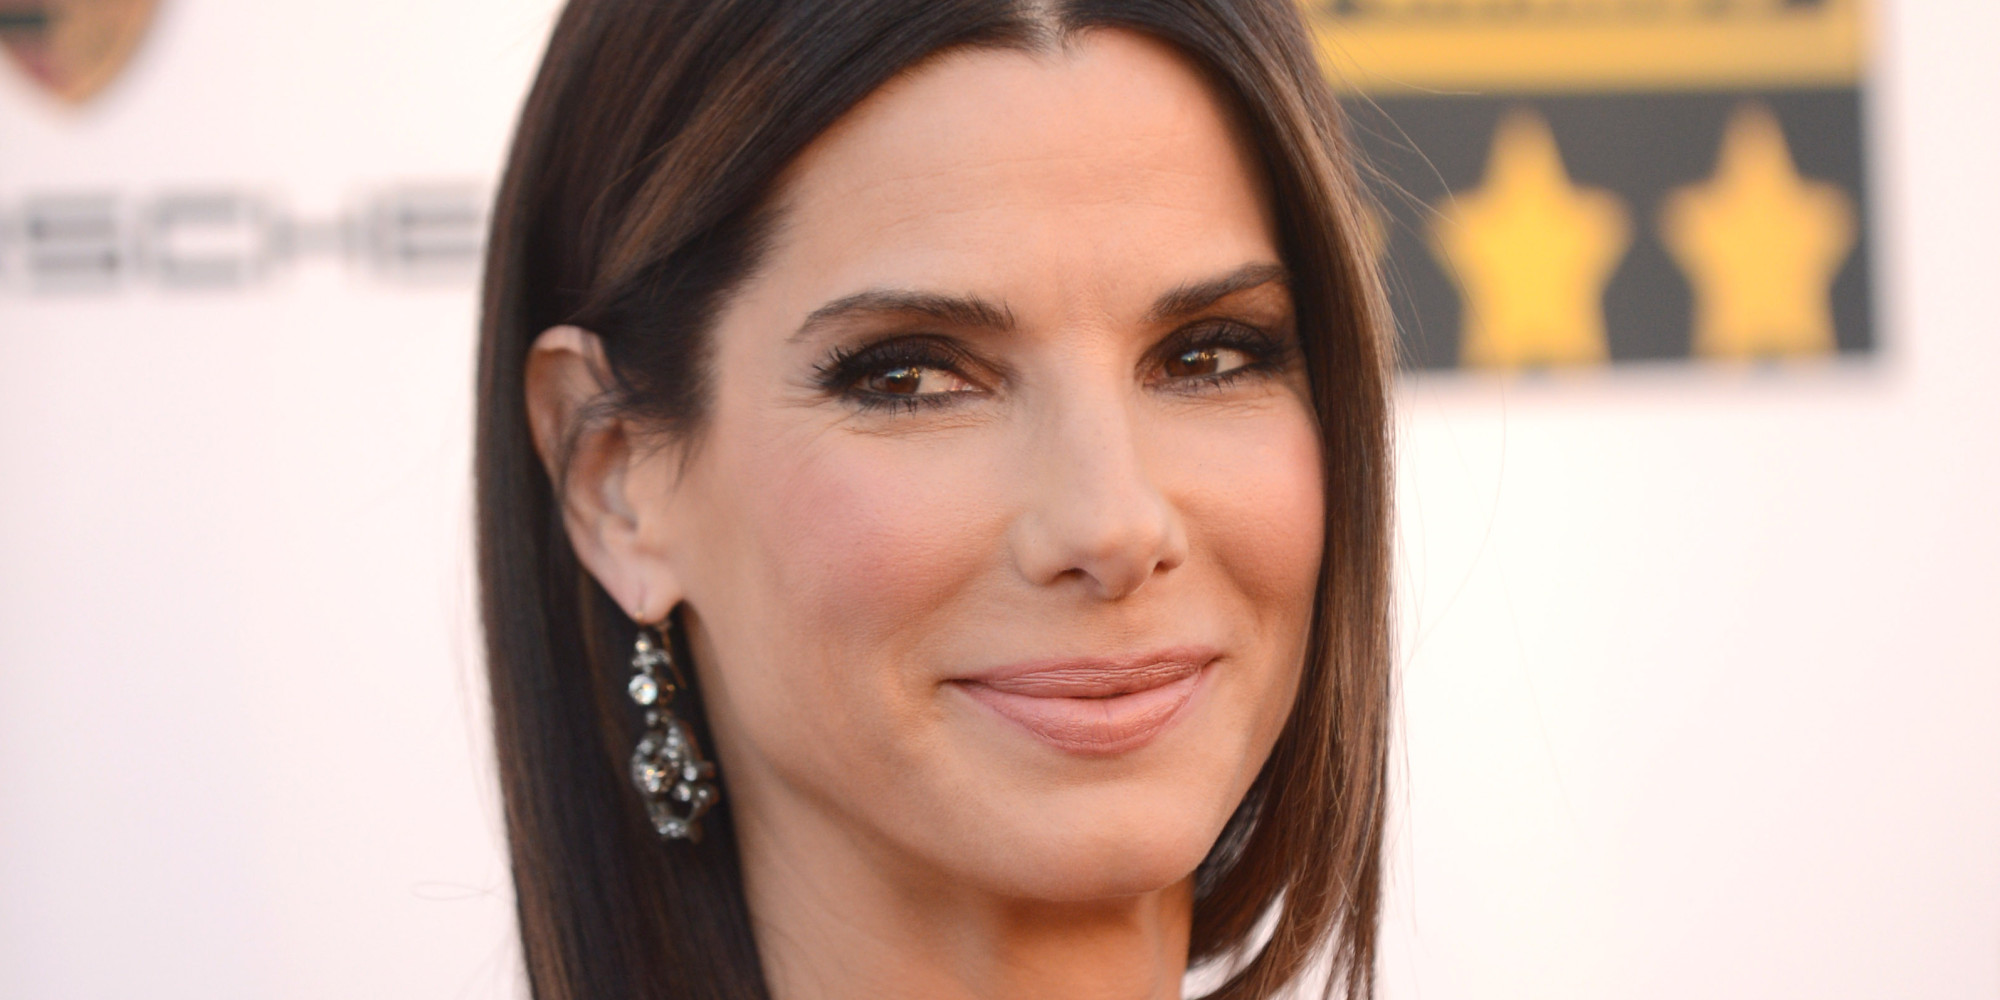 Sandra Bullock Goes Blonde On Set Of 'Our Brand Is Crisis' | The ...